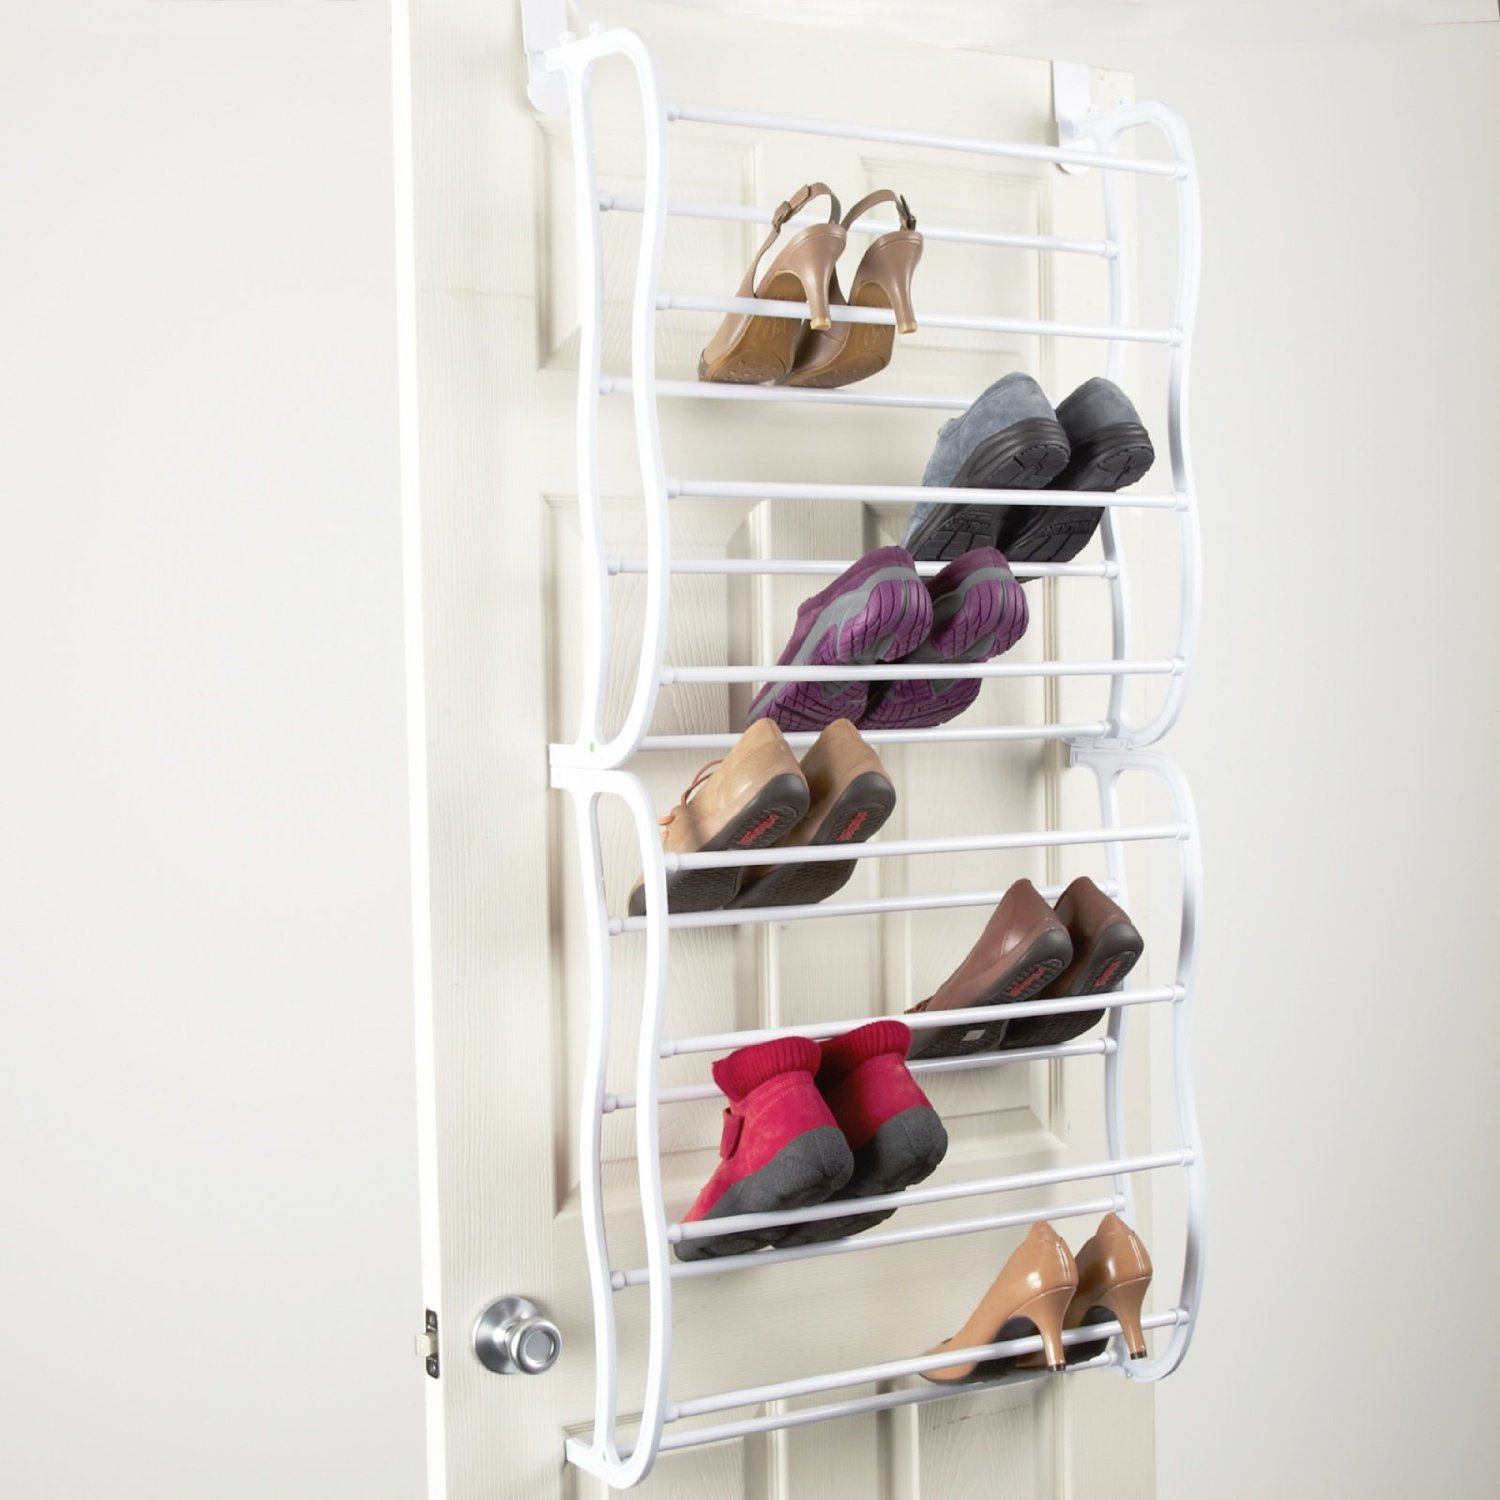 Photos of Innovative Shoe Racks For Closets Design And Ideas Image Of Door. toenail wall & Create a decent space with the shoe racks for closets ...